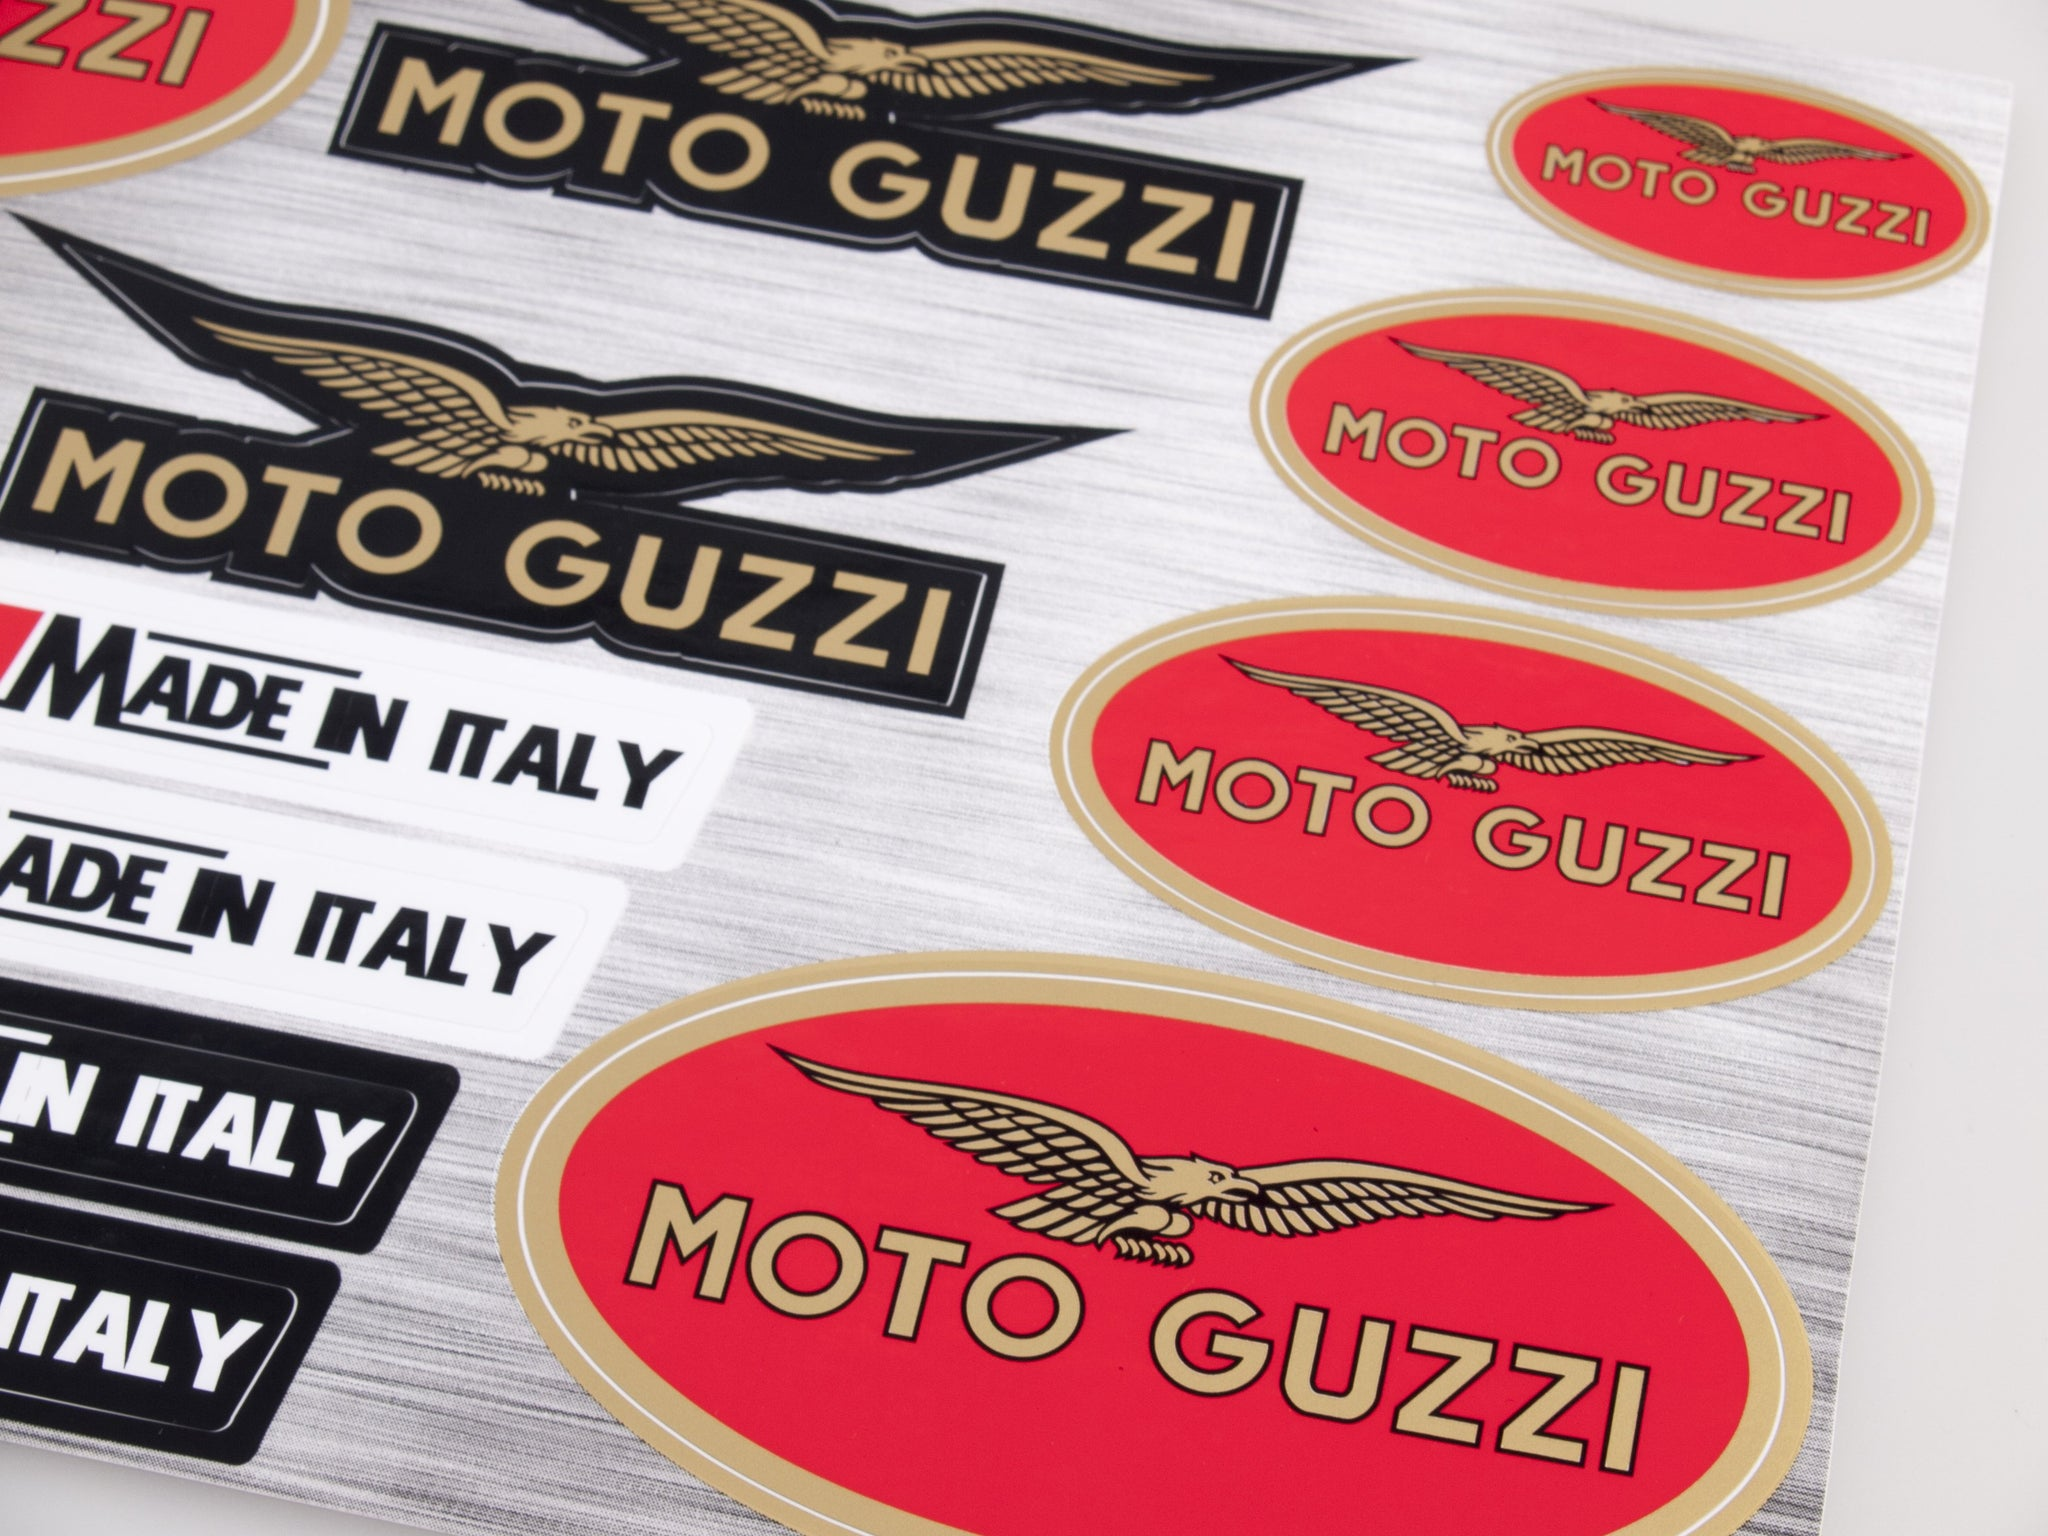 Moto Guzzi  sticker for motorcycle